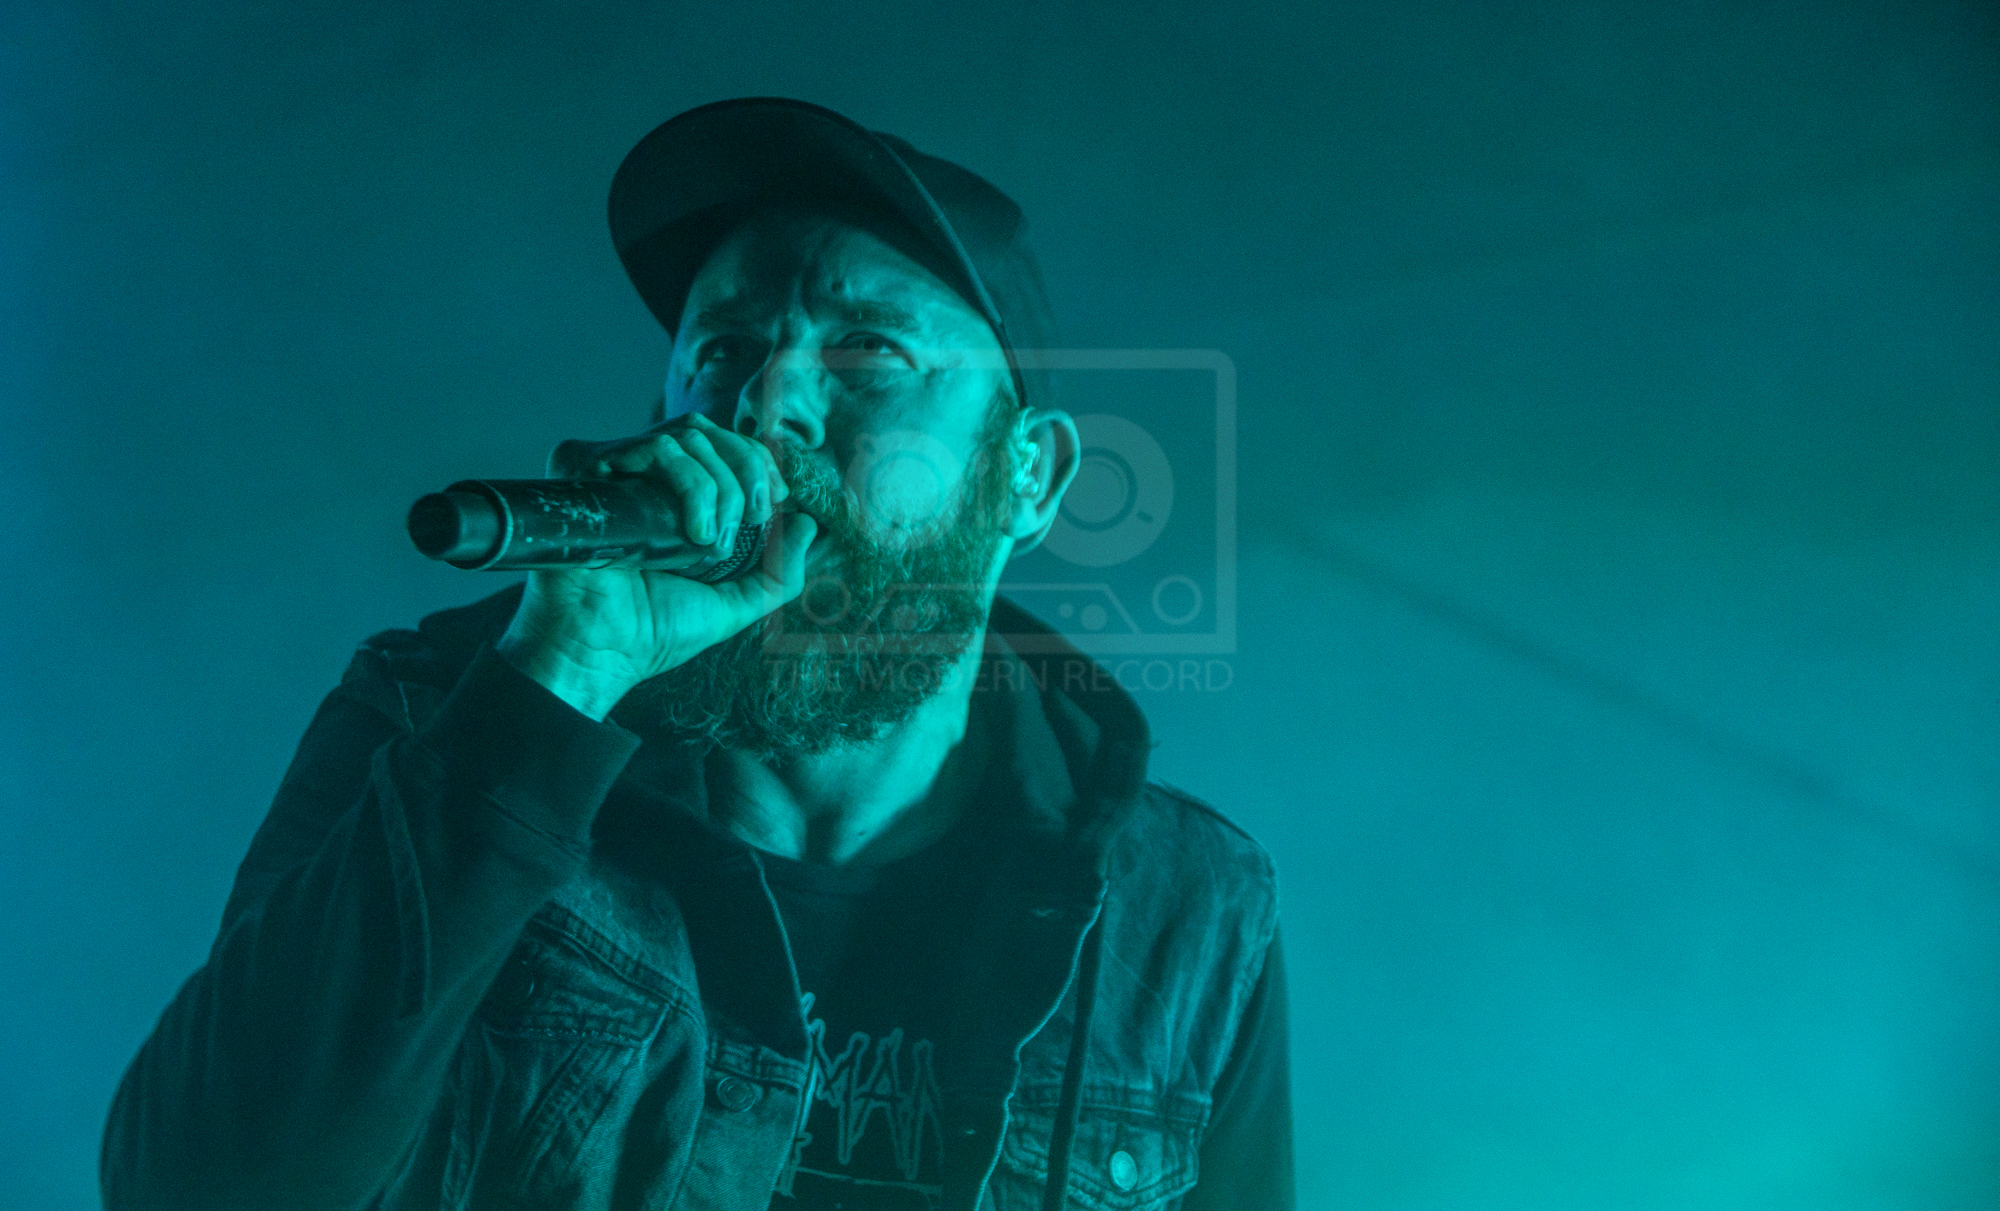 IN FLAMES PERFORMING AT GLASGOW'S SWG3: GALVANIZER'S - 03.04.2019  PICTURE BY: STEPHEN WILSON PHOTOGRAPHY